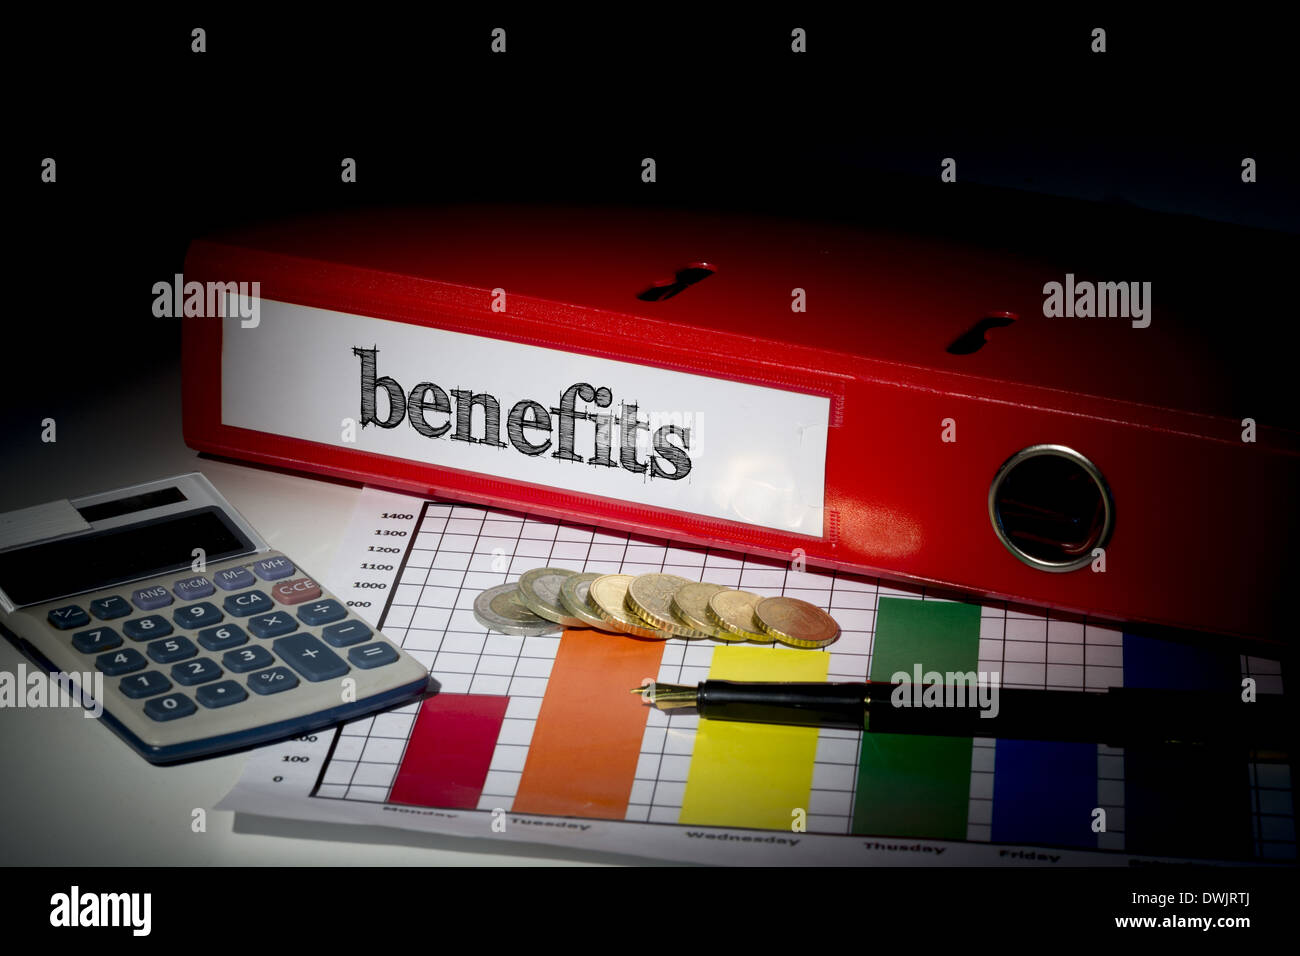 Benefits on red business binder - Stock Image